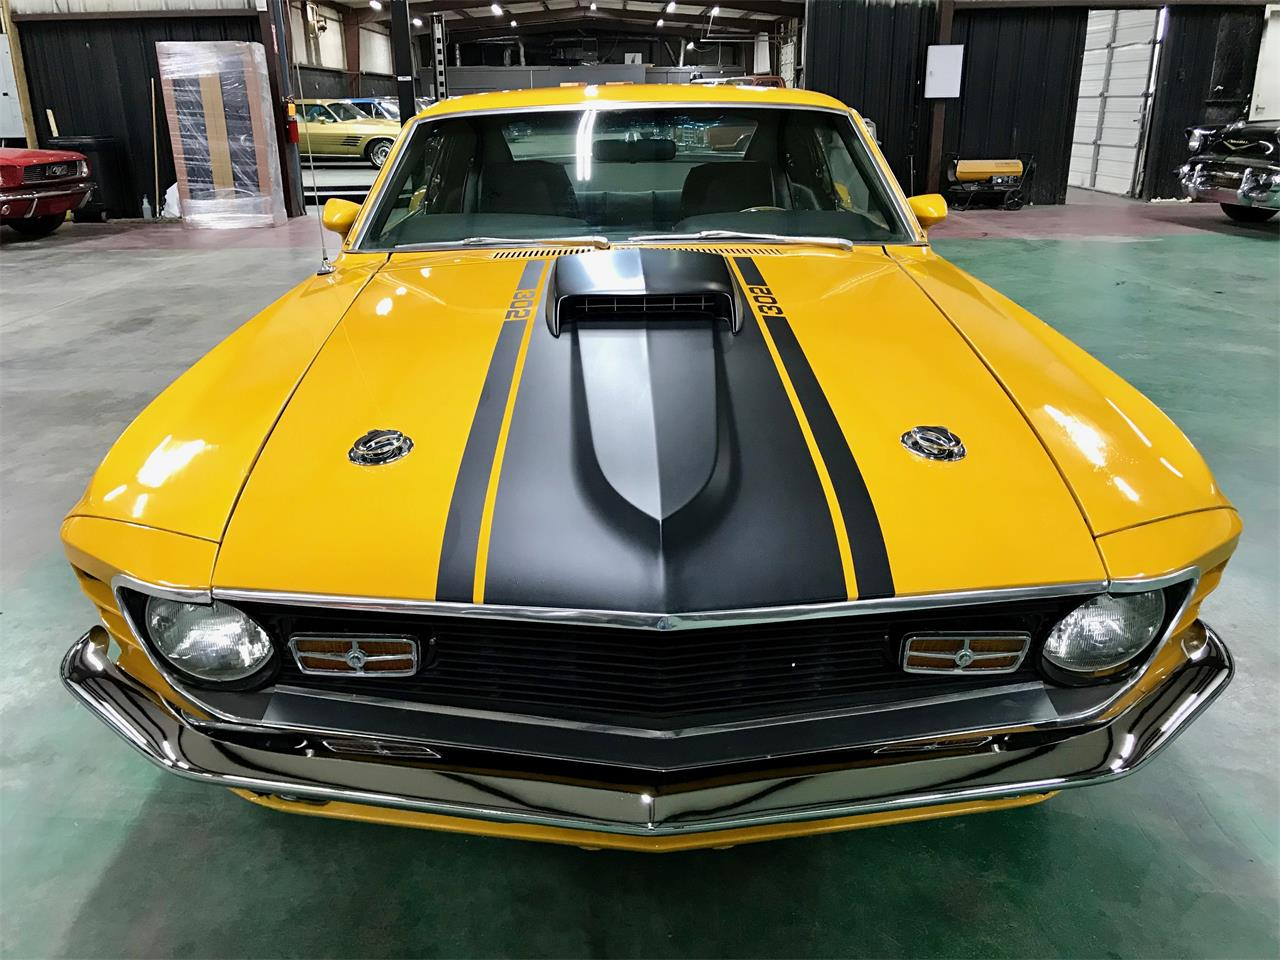 Large Picture of Classic '70 Mustang Mach 1 located in Texas - $28,500.00 Offered by PC Investments - QK0Z